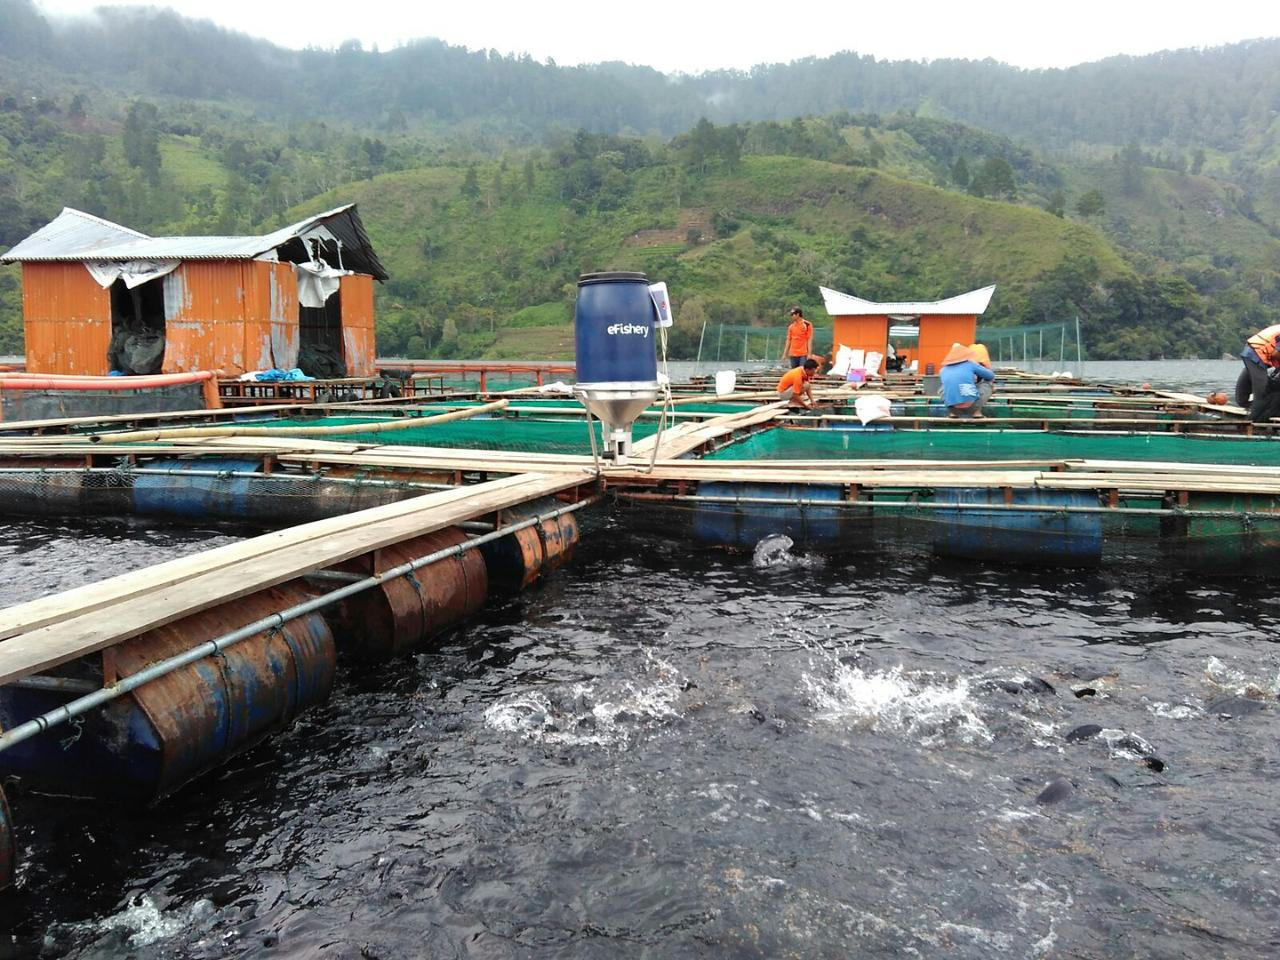 eFishery currently works with carp, catfish, tilapia, snapper, and vannamei shrimp